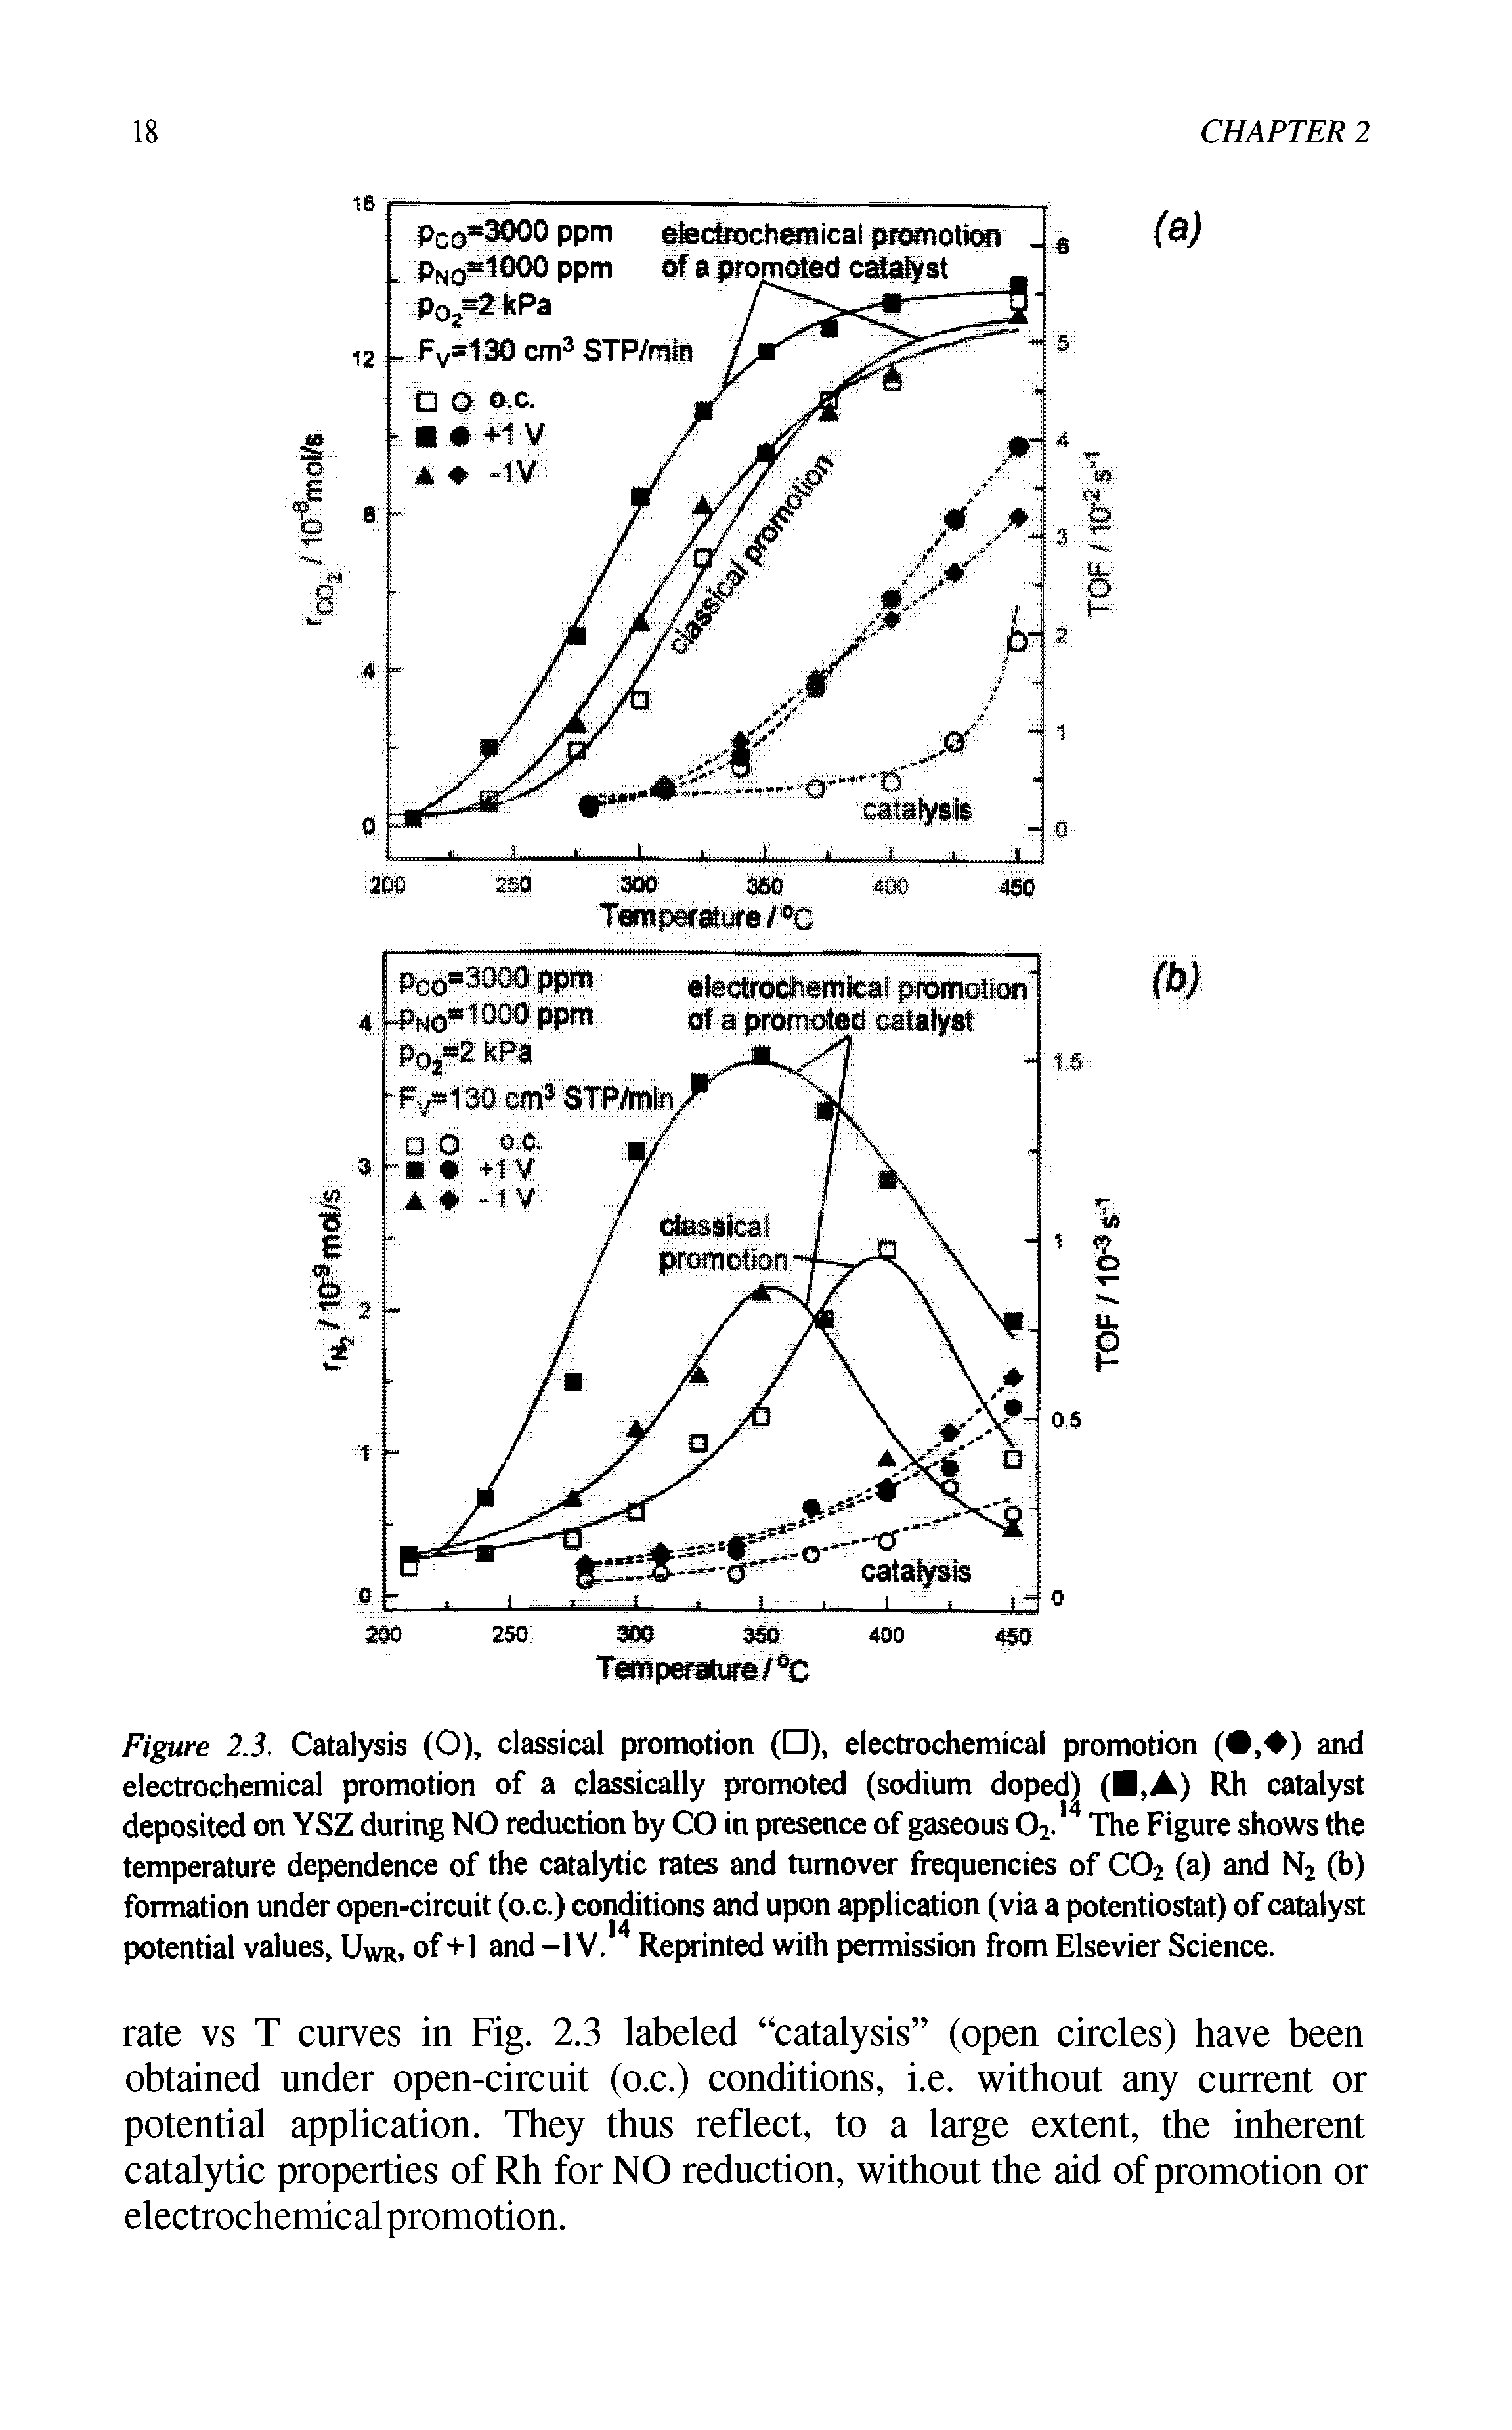 "Figure 2.3. Catalysis (0), classical promotion ( ), <a href=""/info/promotion_electrochemical"">electrochemical promotion</a> ( , ) and <a href=""/info/promotion_electrochemical"">electrochemical promotion</a> of a classically promoted (sodium doped) ( , ) Rh <a href=""/info/catalyst_deposits"">catalyst deposited</a> on YSZ during NO reduction by CO in presence of gaseous 02.14 The Figure shows the <a href=""/info/ph_temperature_dependence"">temperature dependence</a> of the <a href=""/info/catalytic_rate"">catalytic rates</a> and <a href=""/info/turnover_frequencies"">turnover frequencies</a> of C02 (a) and N2 (b) formation under <a href=""/info/open_circuit"">open-circuit</a> (o.c.) conditions and upon application (via a potentiostat) of catalyst potential values, UWr, of+1 and -IV. Reprinted with permission from Elsevier Science."